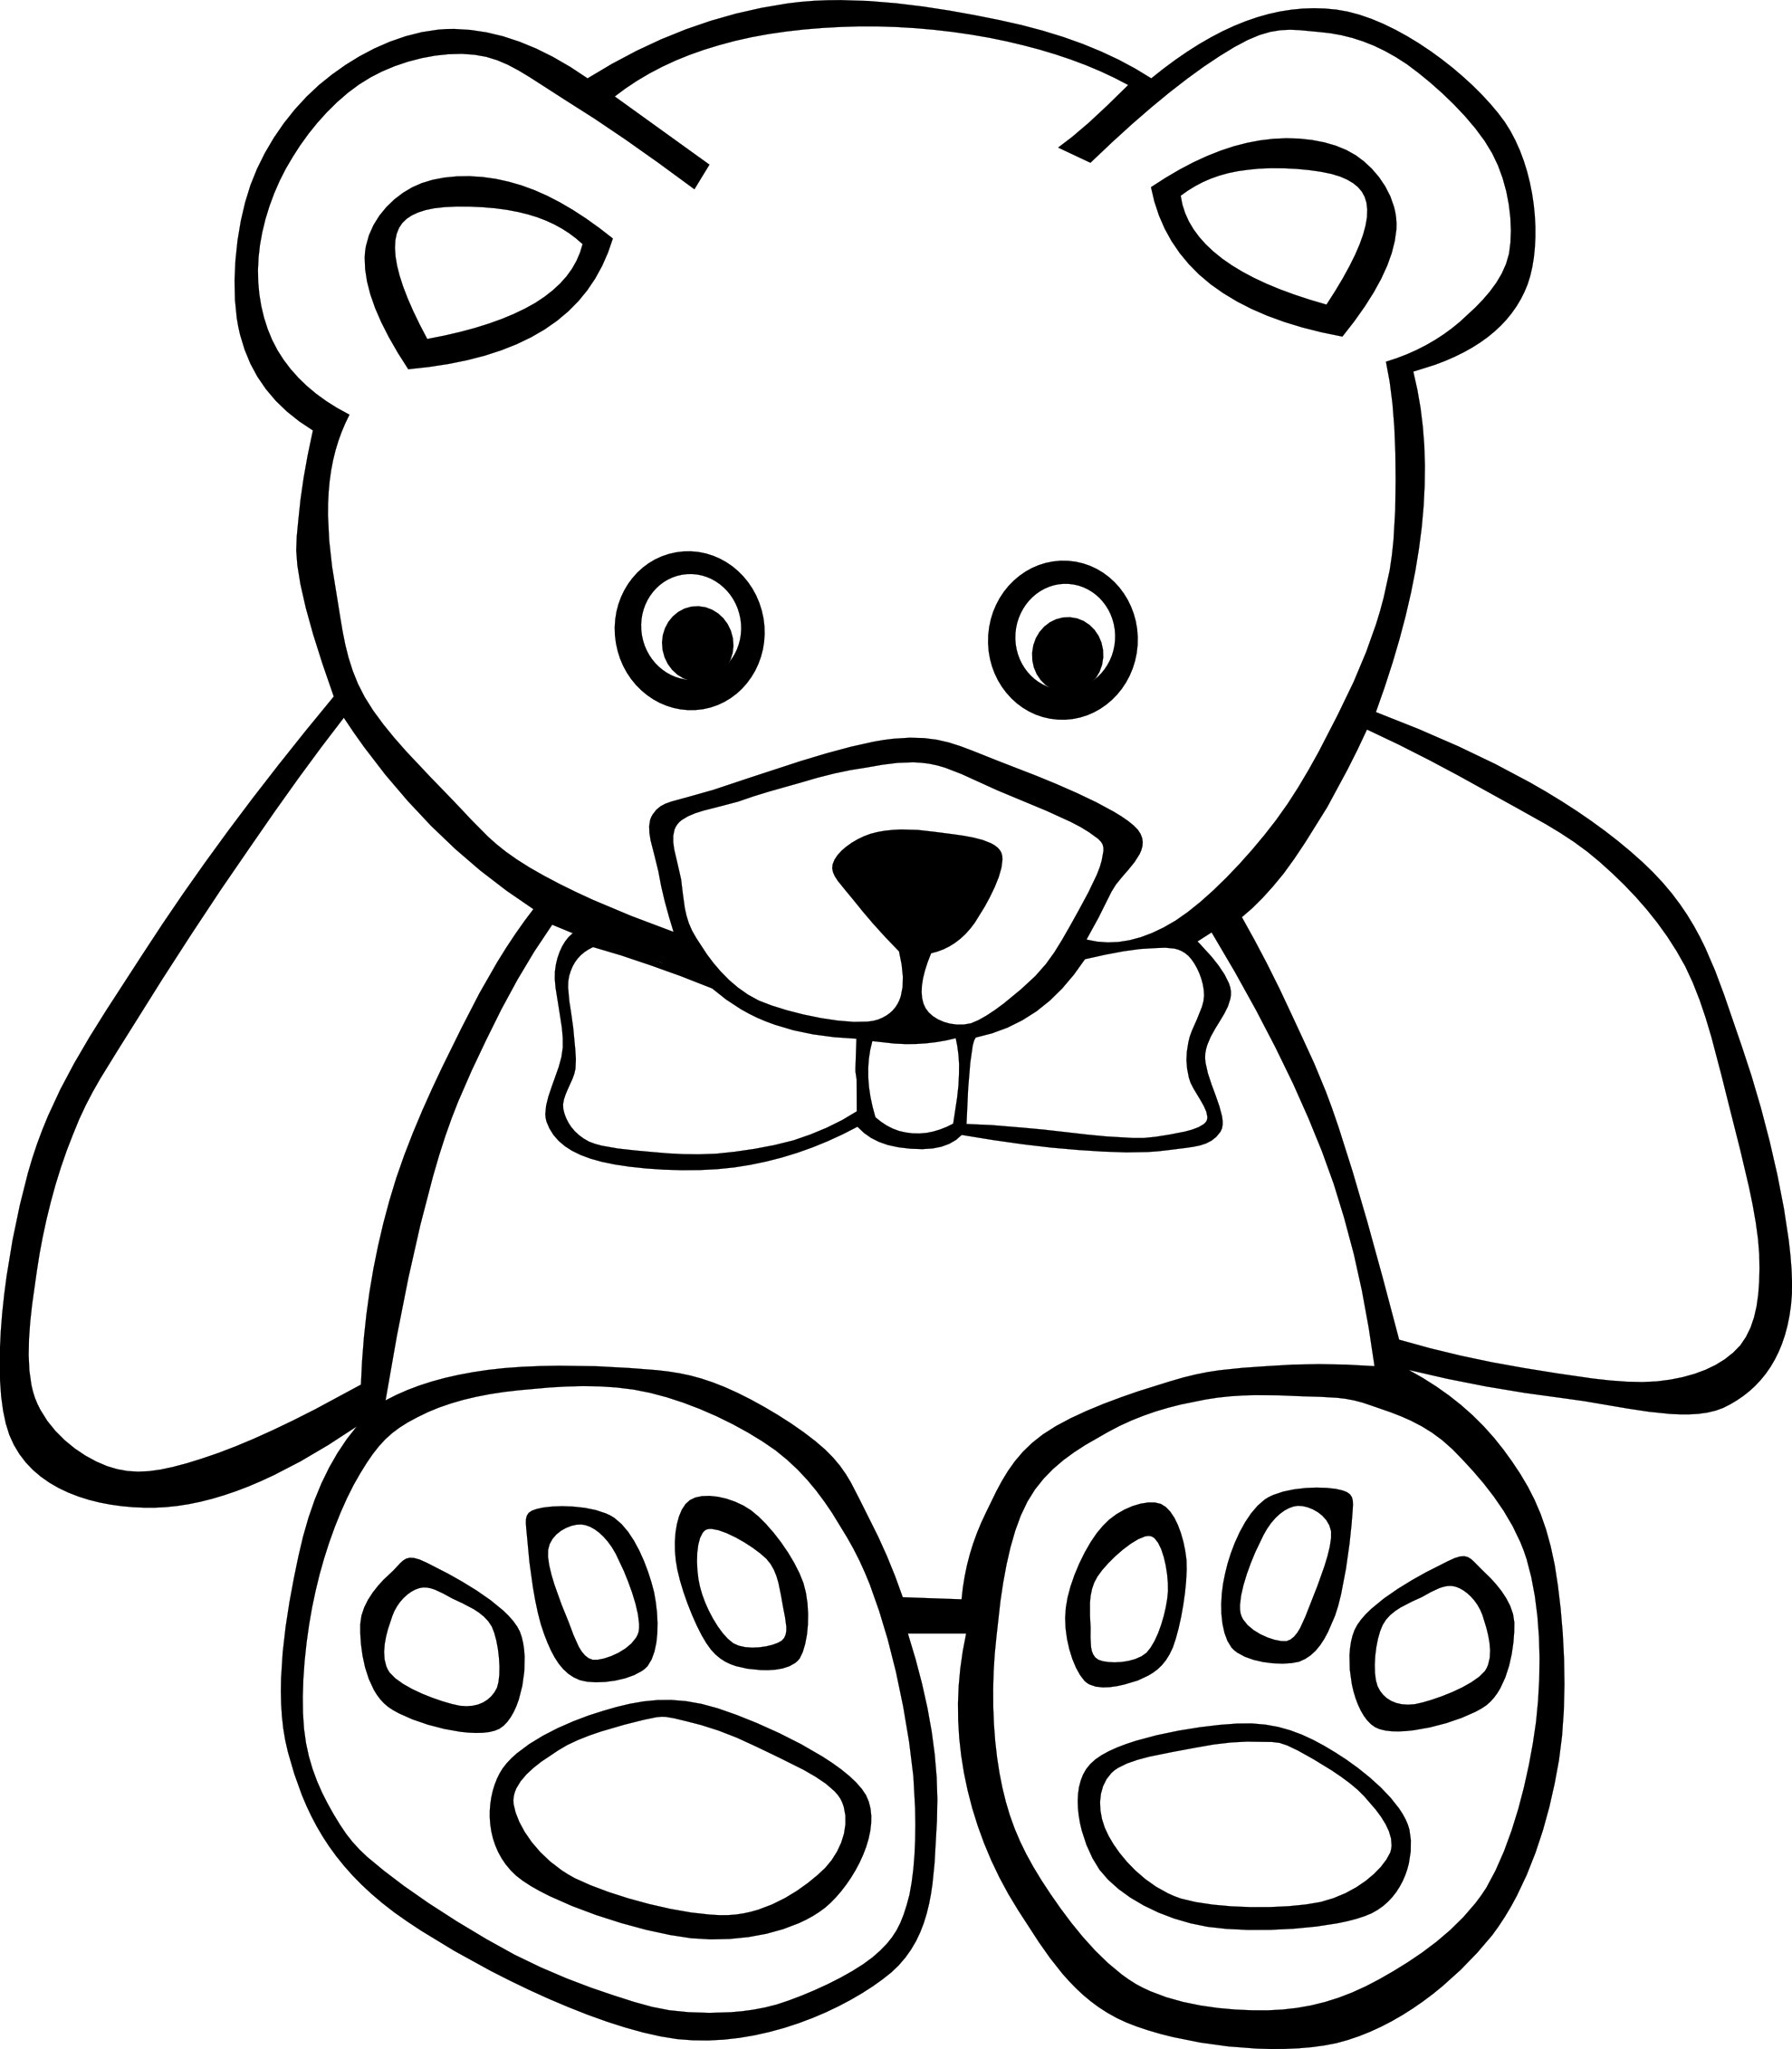 teddy bear coloring pages free printable teddy bear coloring pages for kids teddy bear coloring pages